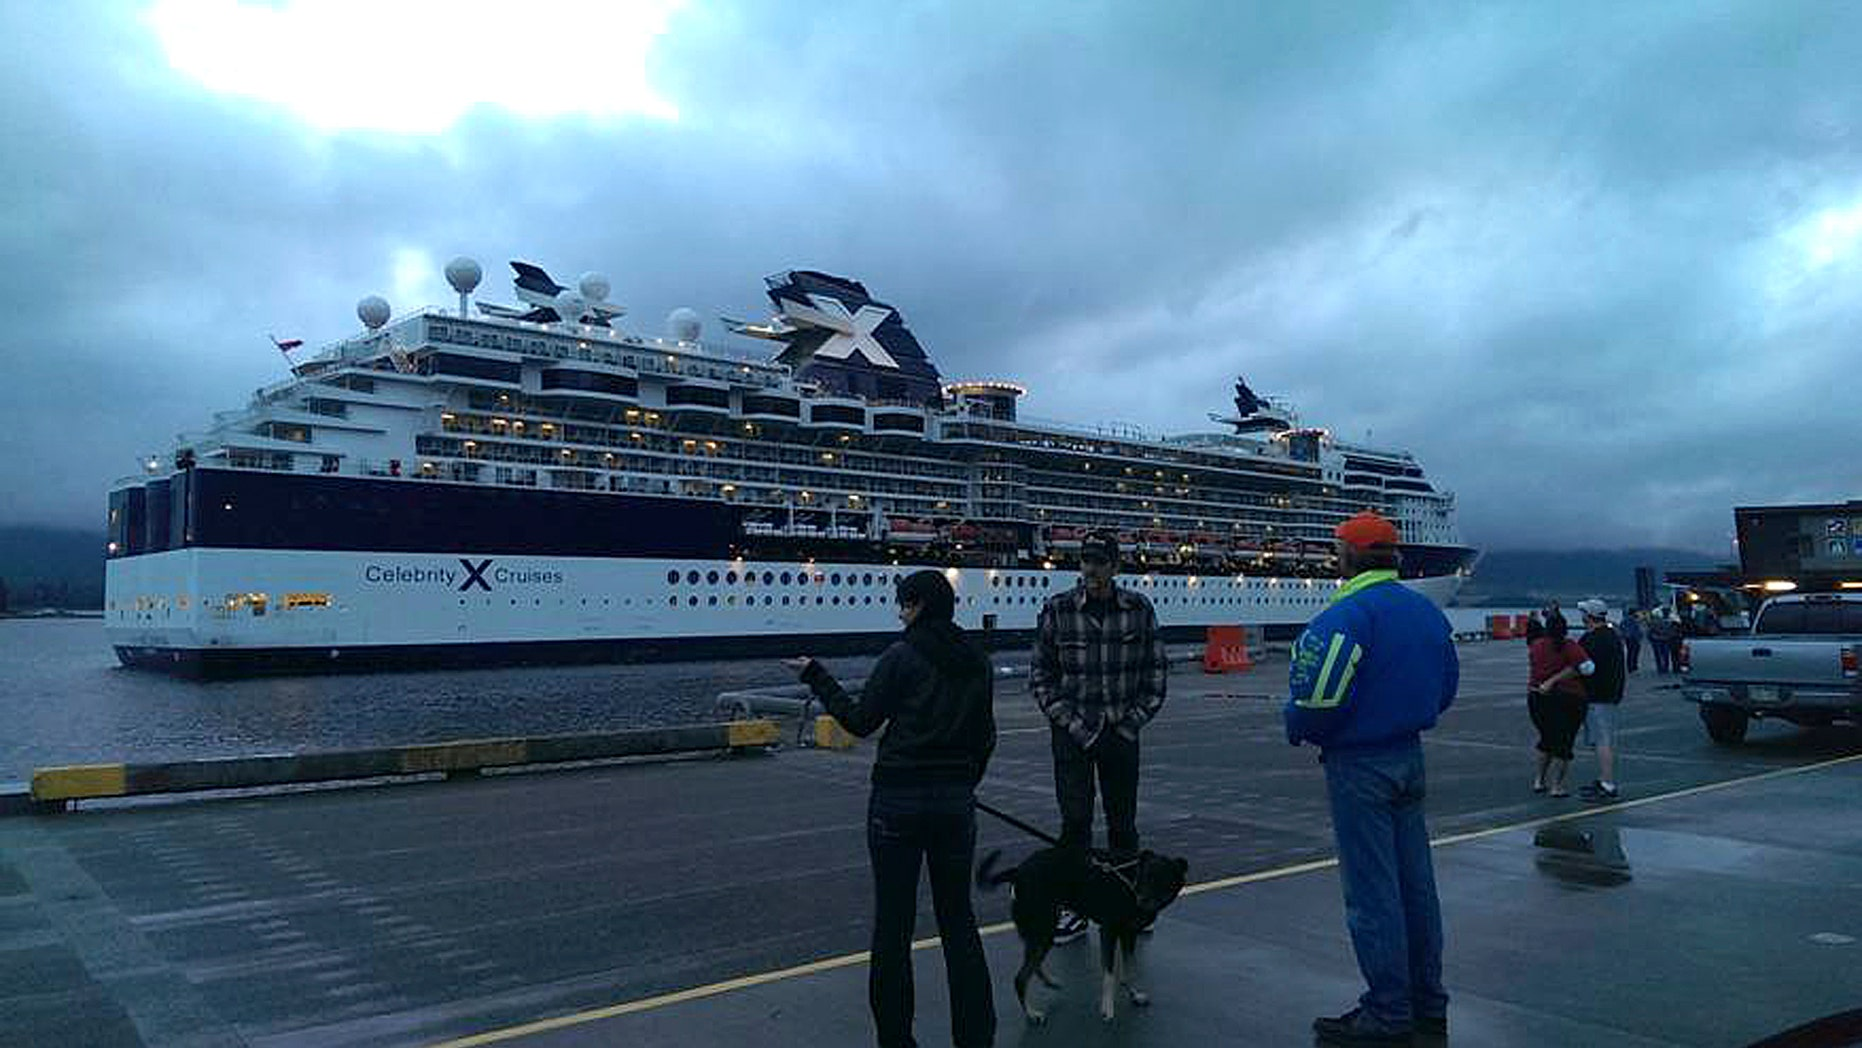 Aug. 19, 2013: A small crowd as it gathers near Berth 3 to watch the Celebrity Cruises' Millennium return to Ketchikan, Alaska.